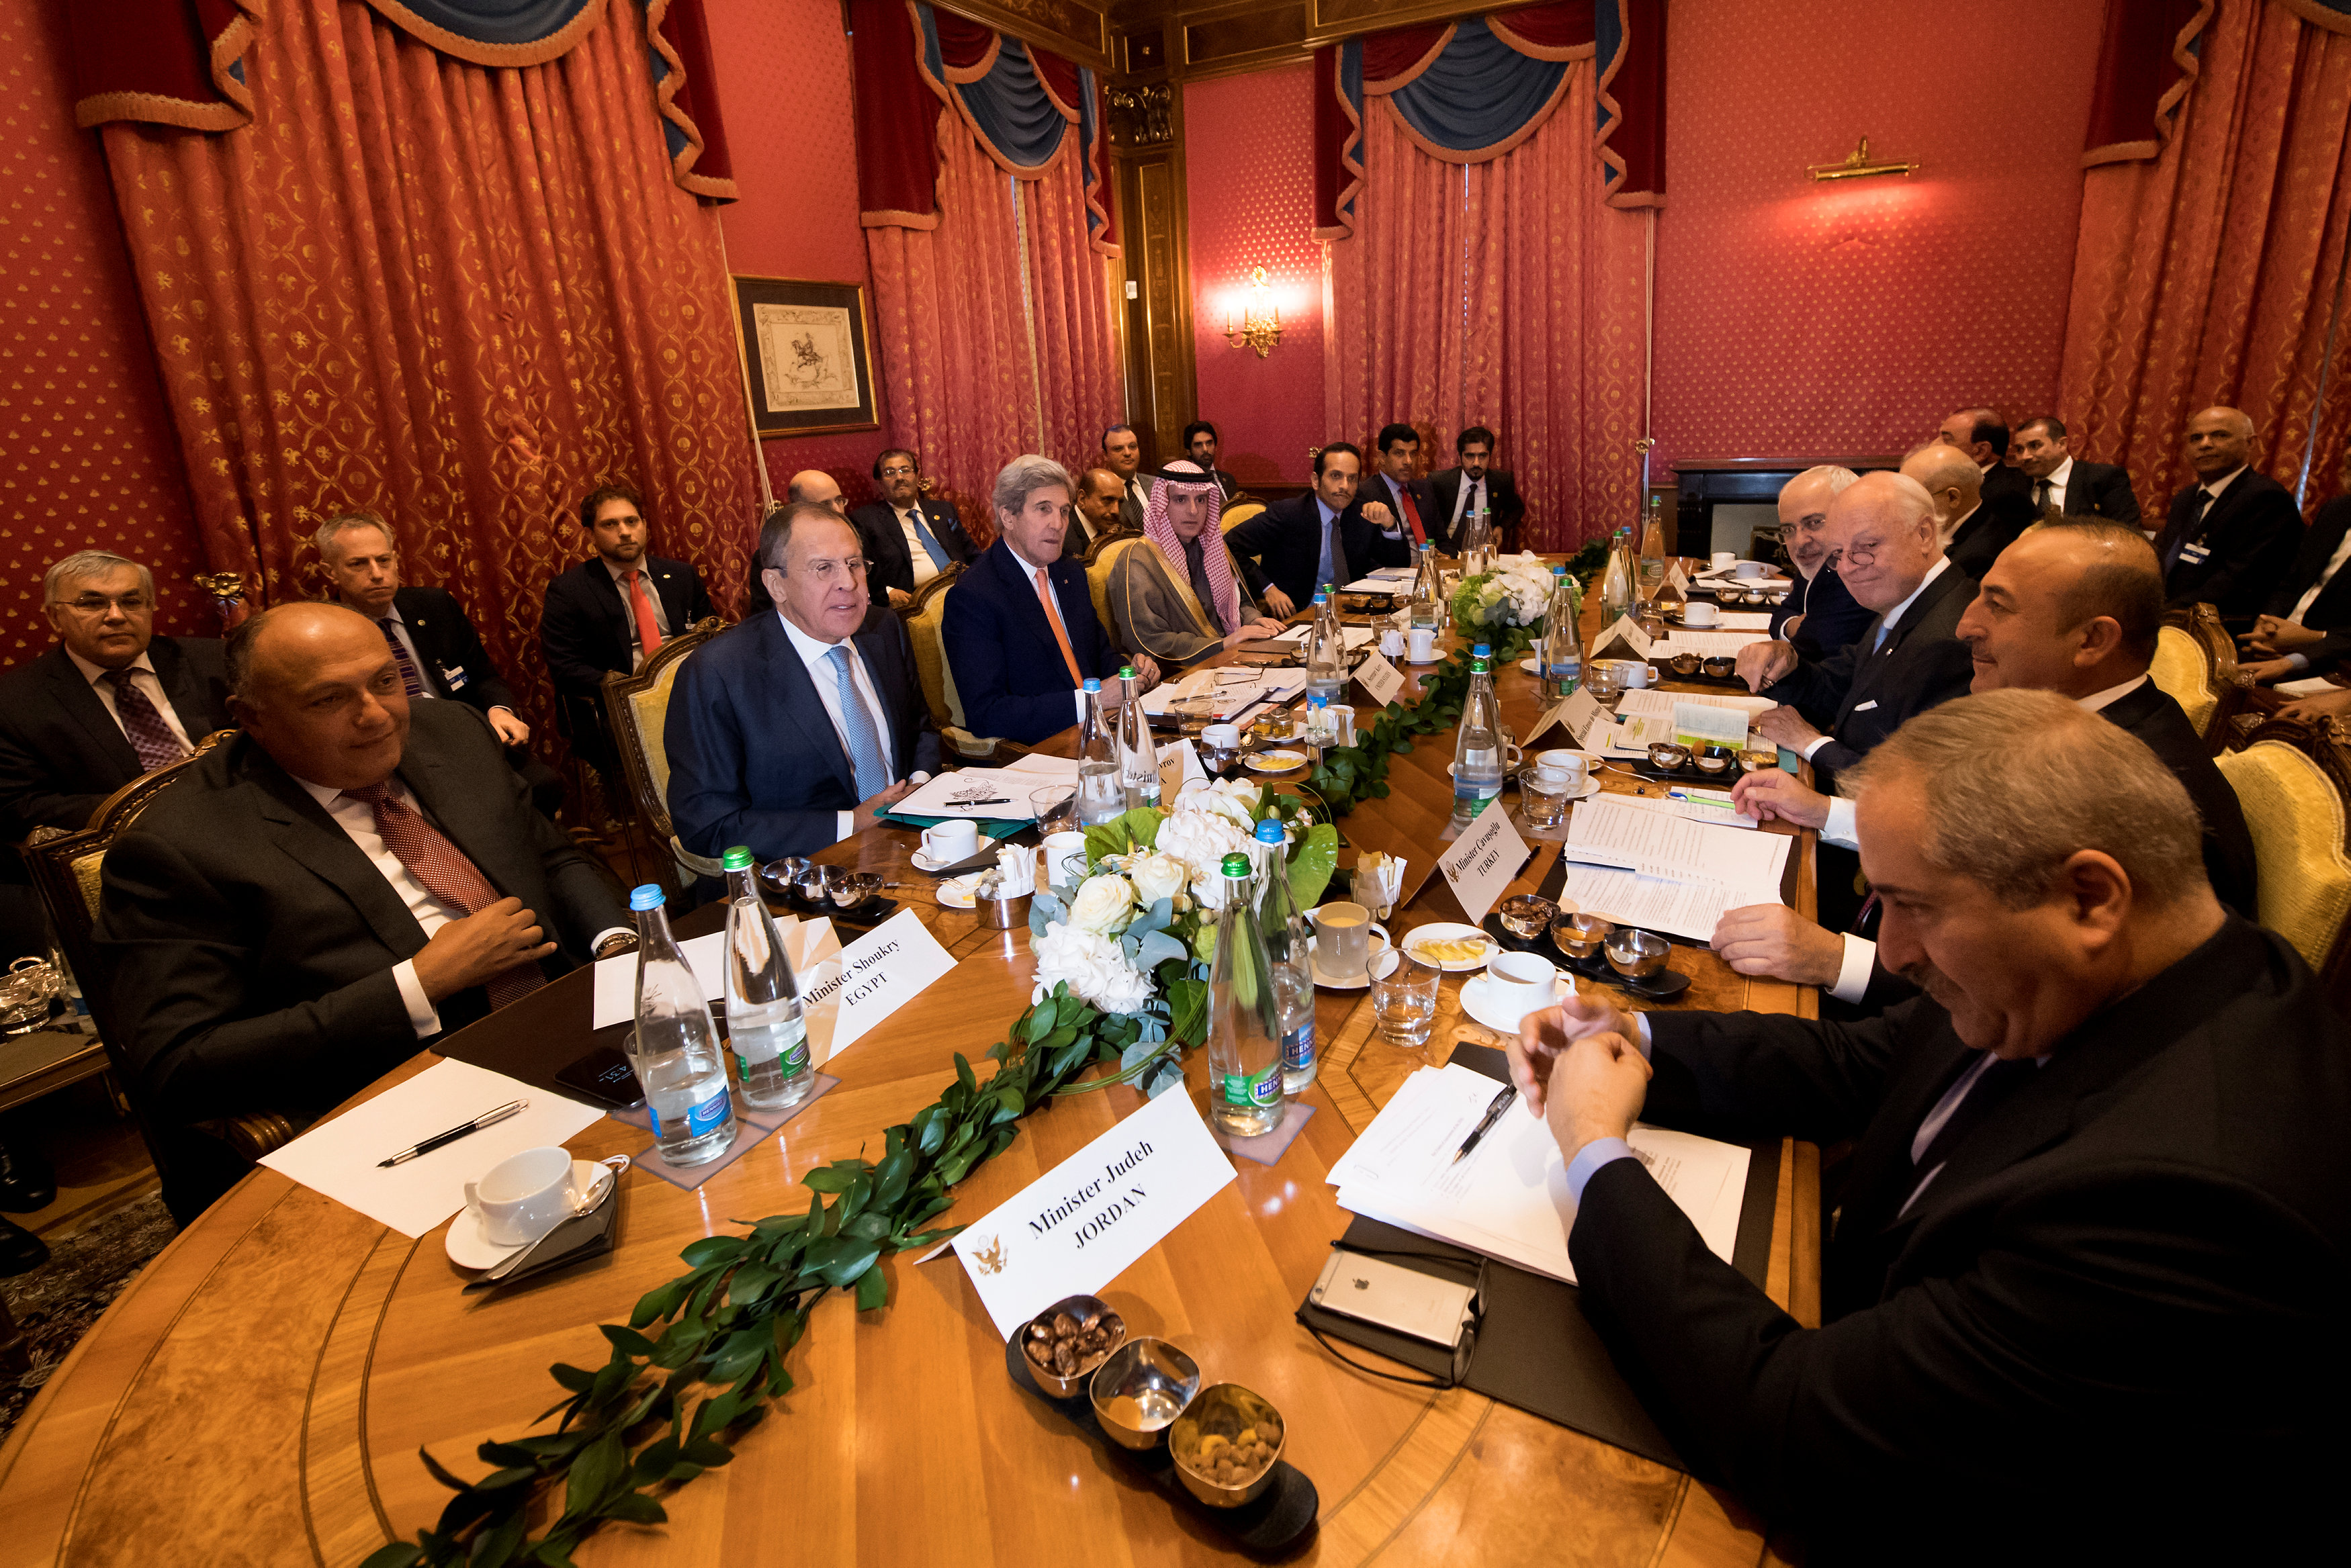 Foreign ministers meet around a table during a bilateral meeting where they discussed the crisis in Syria, in Lausanne